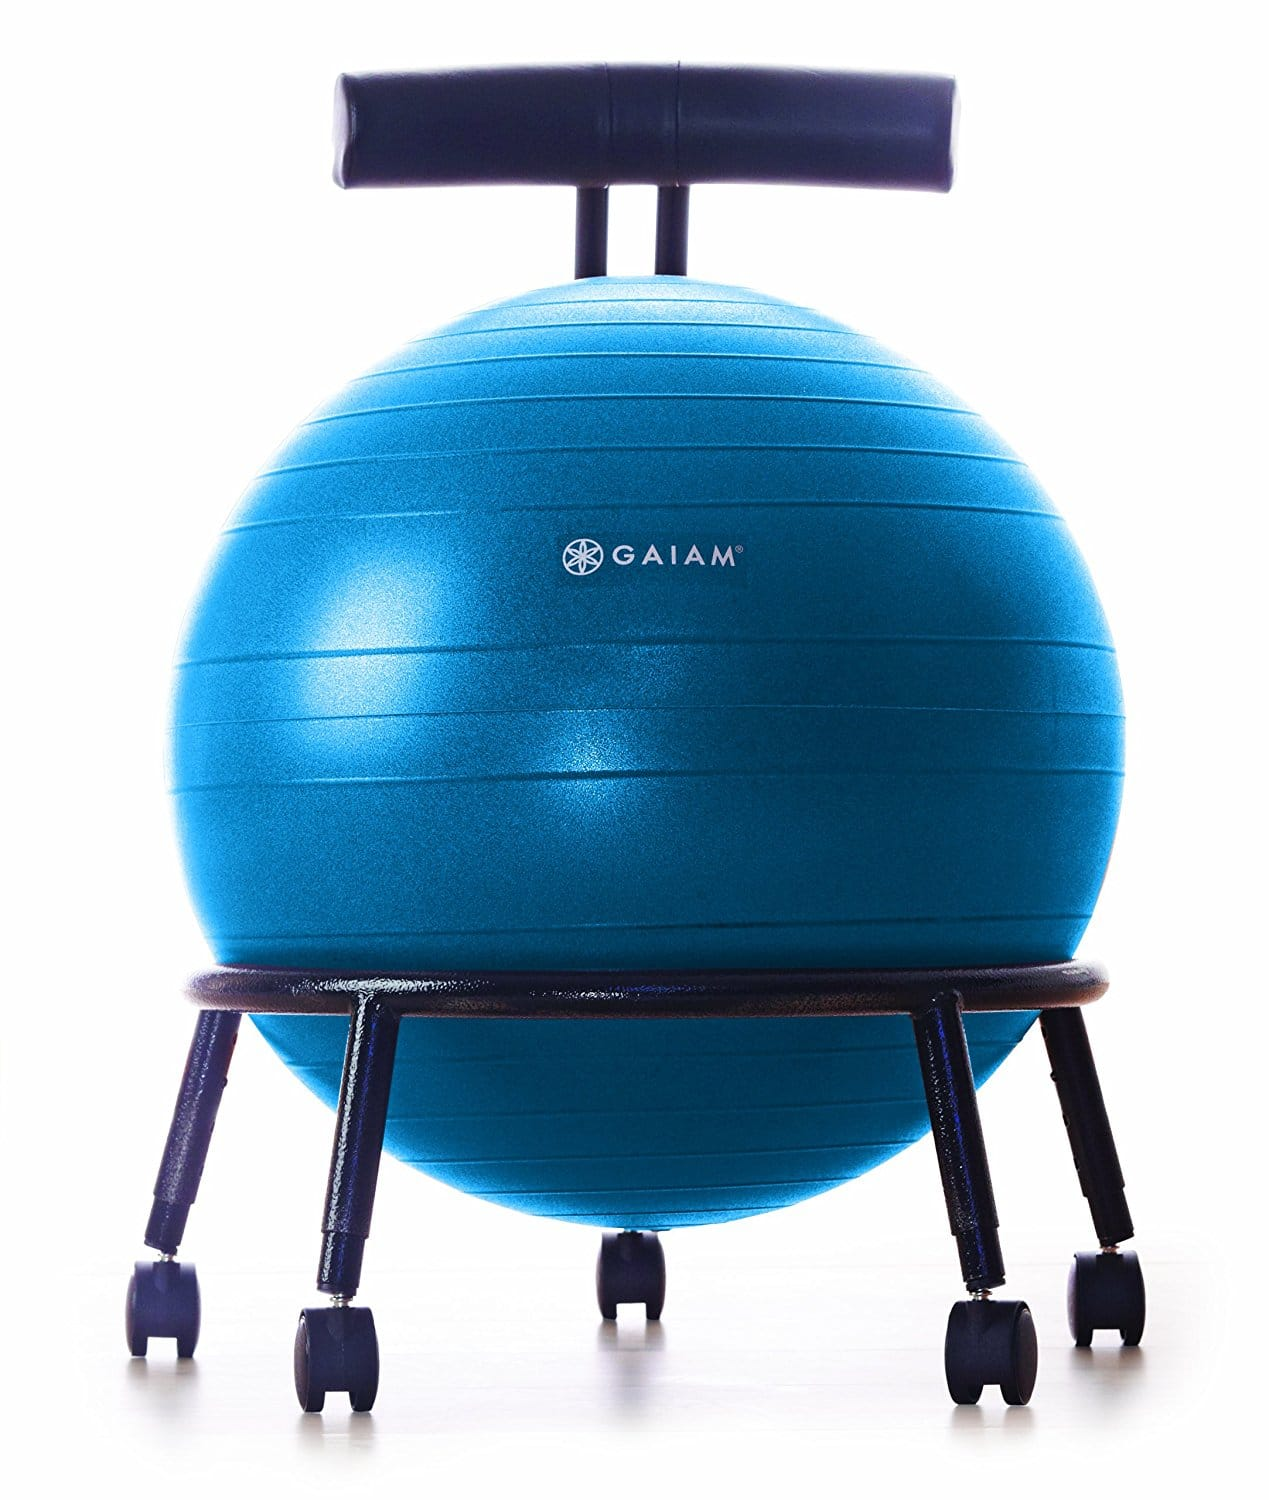 balance ball chair - Gaiam Custom Fit Adjustable Balance Ball Chair